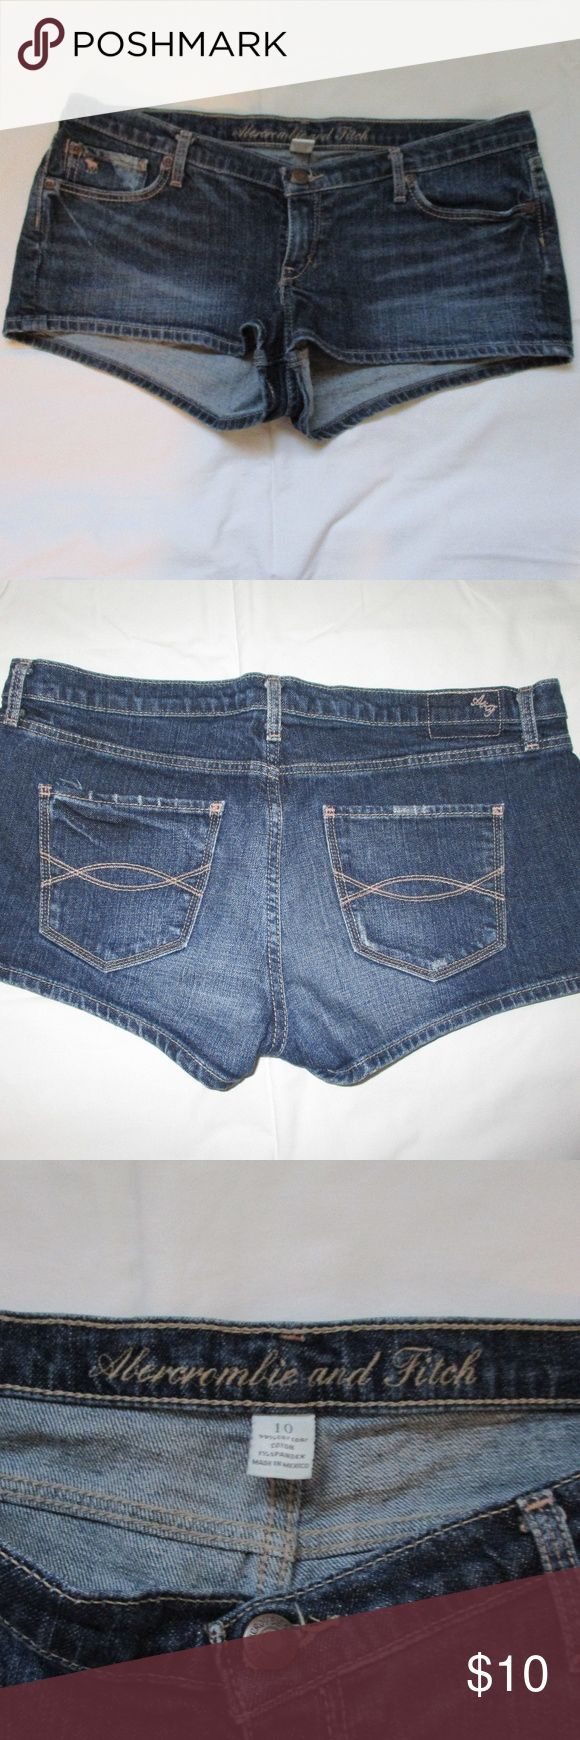 Abercrombie and Fitch jeans shorts Abercrombie and Fitch jeans shorts.  Size 10.  99% cotton, 1% spandex. In good condition. Right pocket area slightly discolored (see photo). Abercrombie & Fitch Shorts Jean Shorts